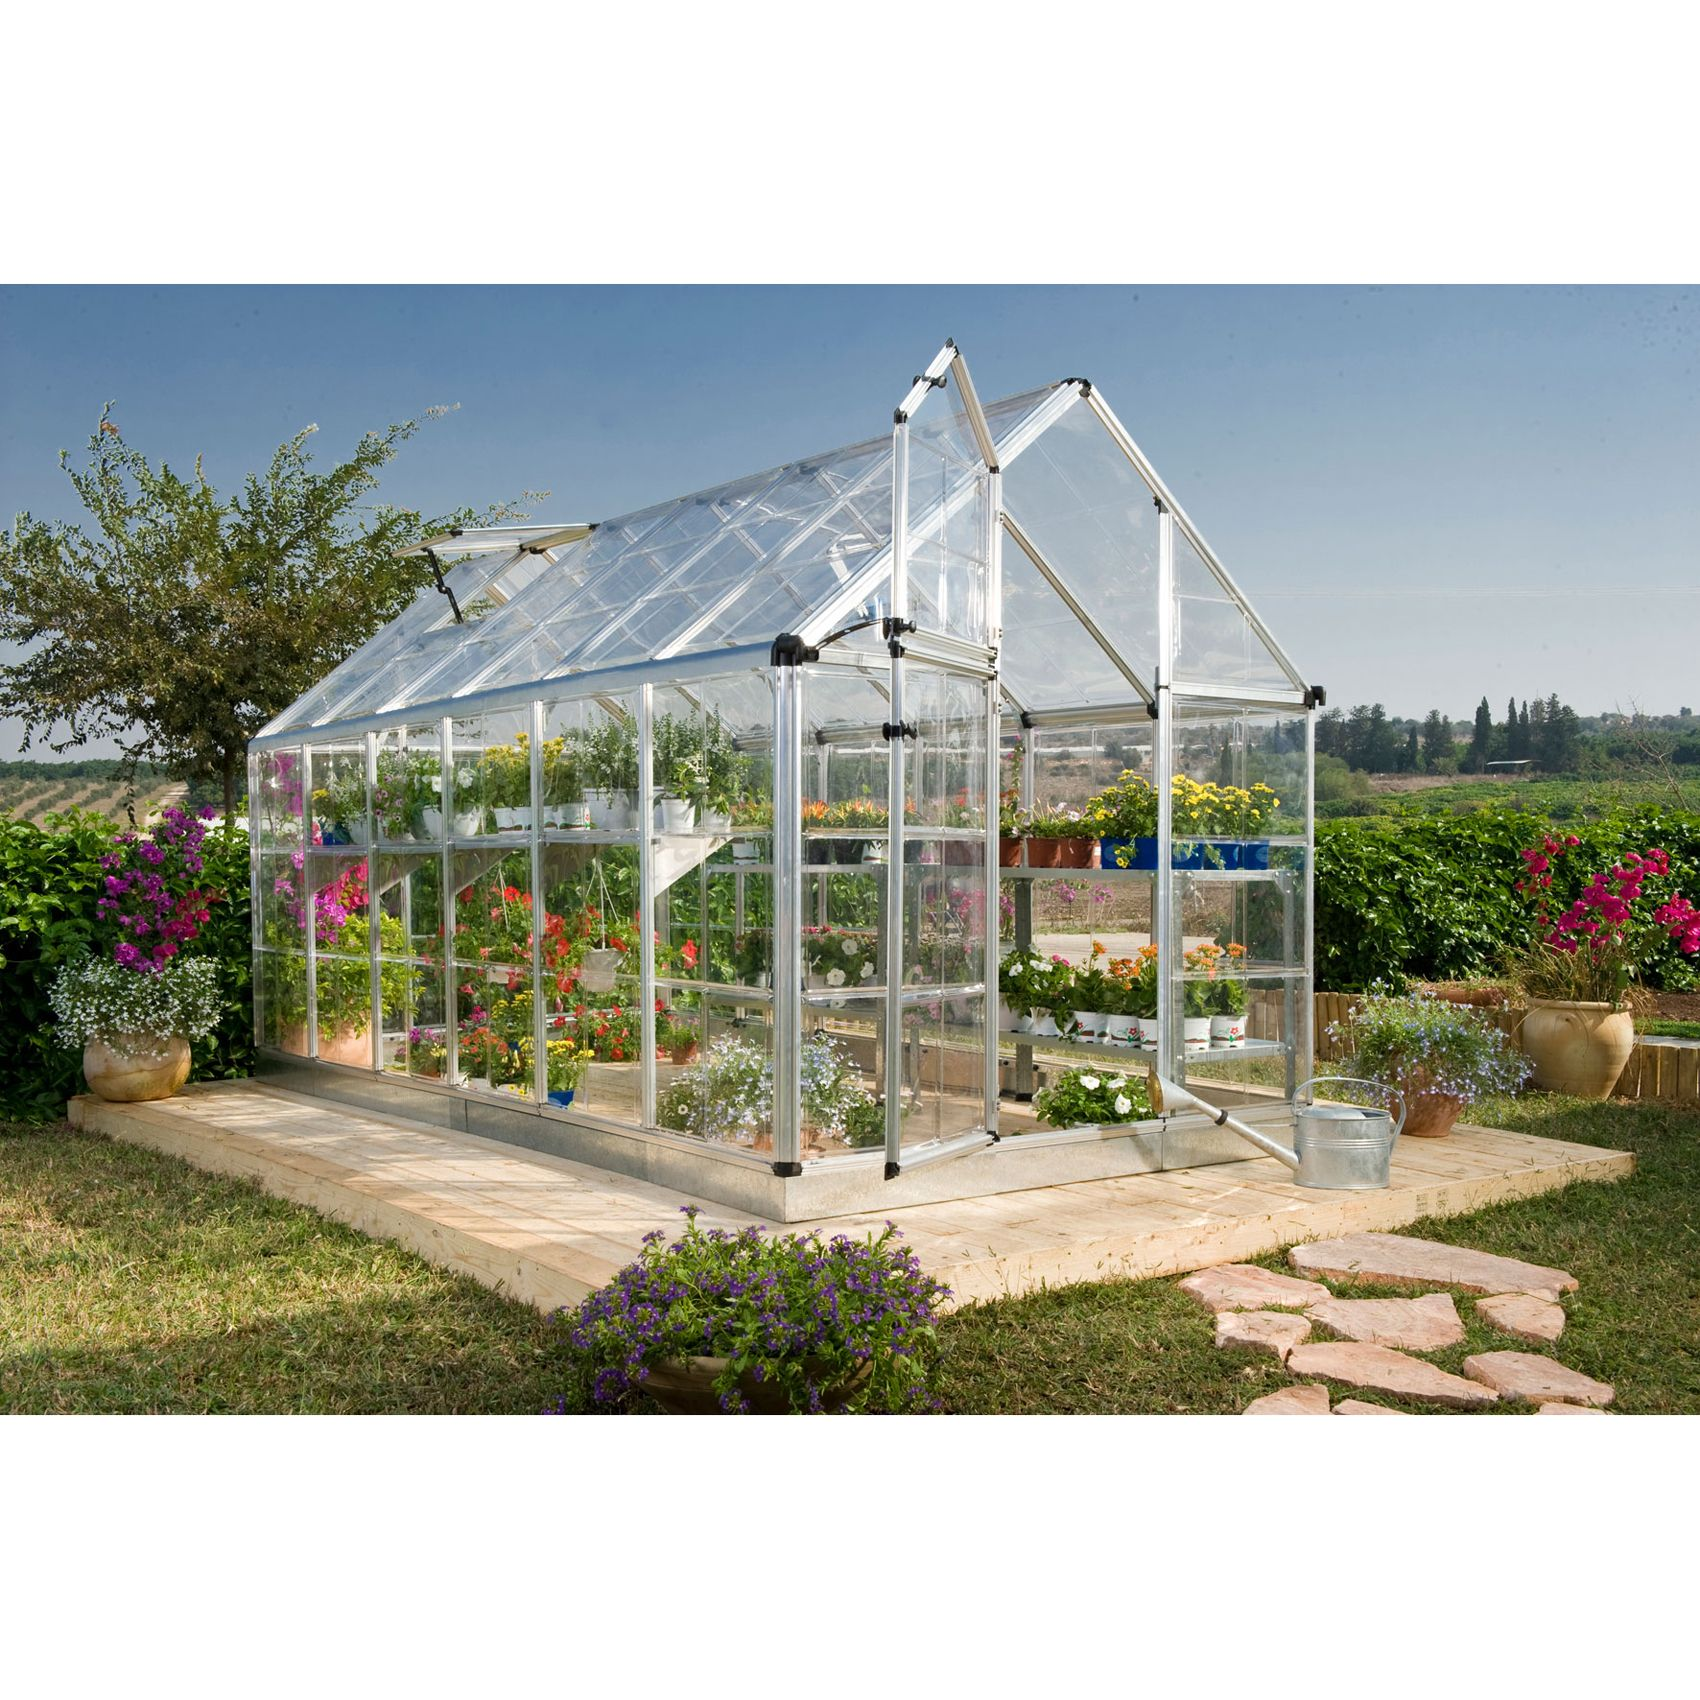 HG6016 Snap & Grow Hobby Greenhouse (6 ft. x 16 ft.)